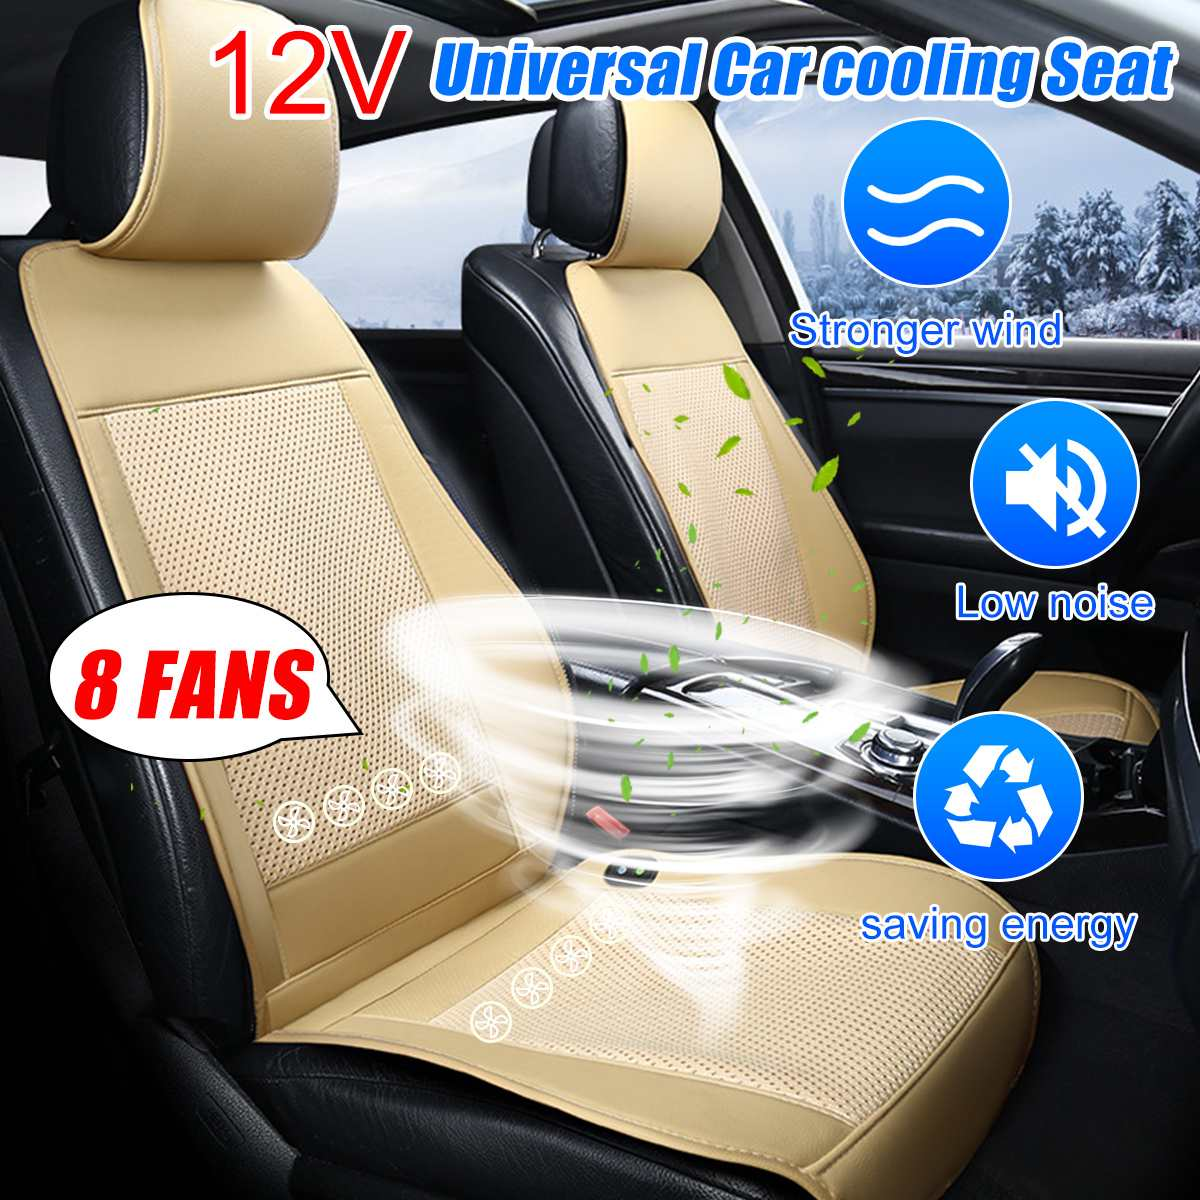 12V 4/8 Built-in Fan 3 Speeds Cooling Car Seat Cushion Cover Air Ventilated Fan Conditioned Cooler Pad Seat Cushion Covers